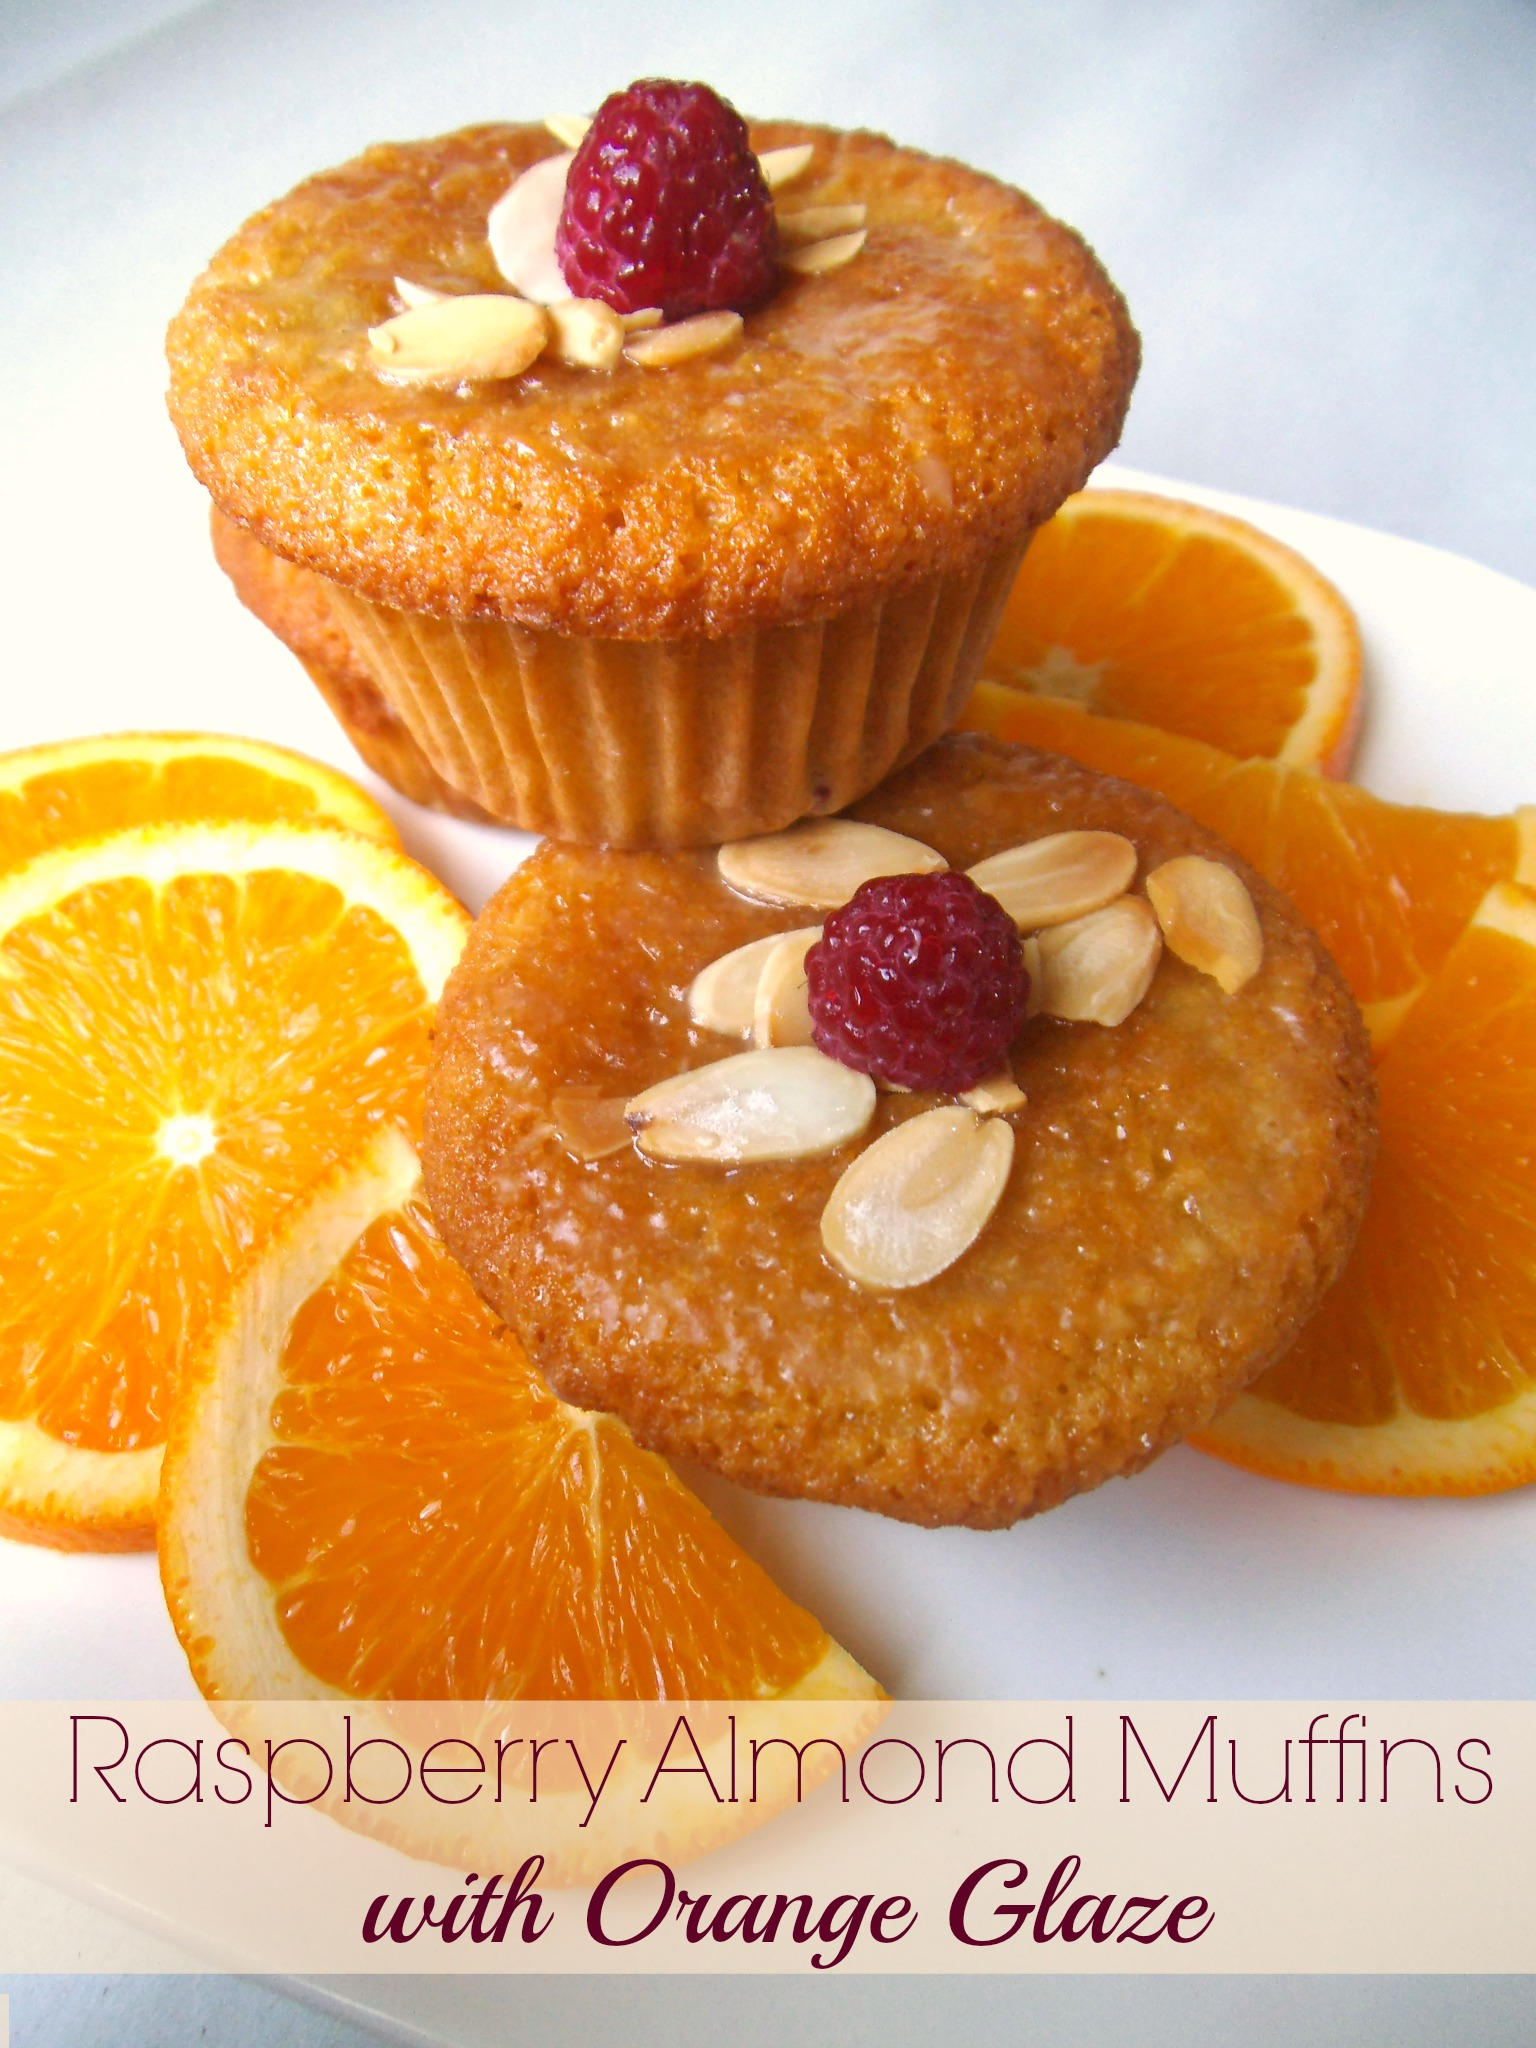 Raspberry Almond Muffins (or Cupcakes) with Orange Glaze ...